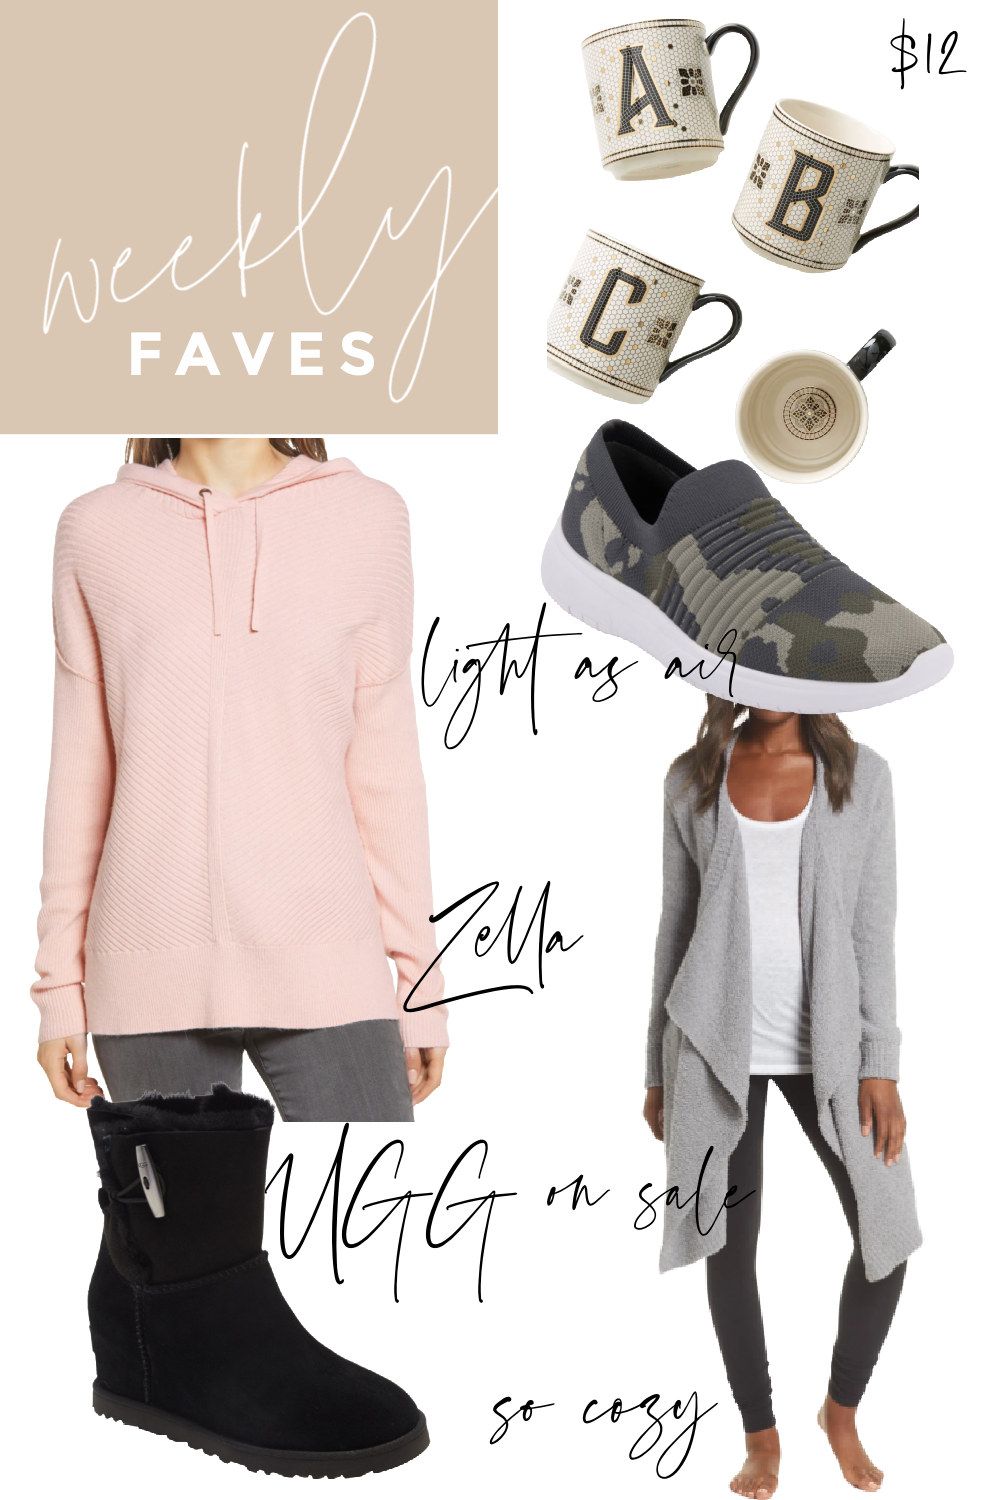 Weekly Faves 12.2.20